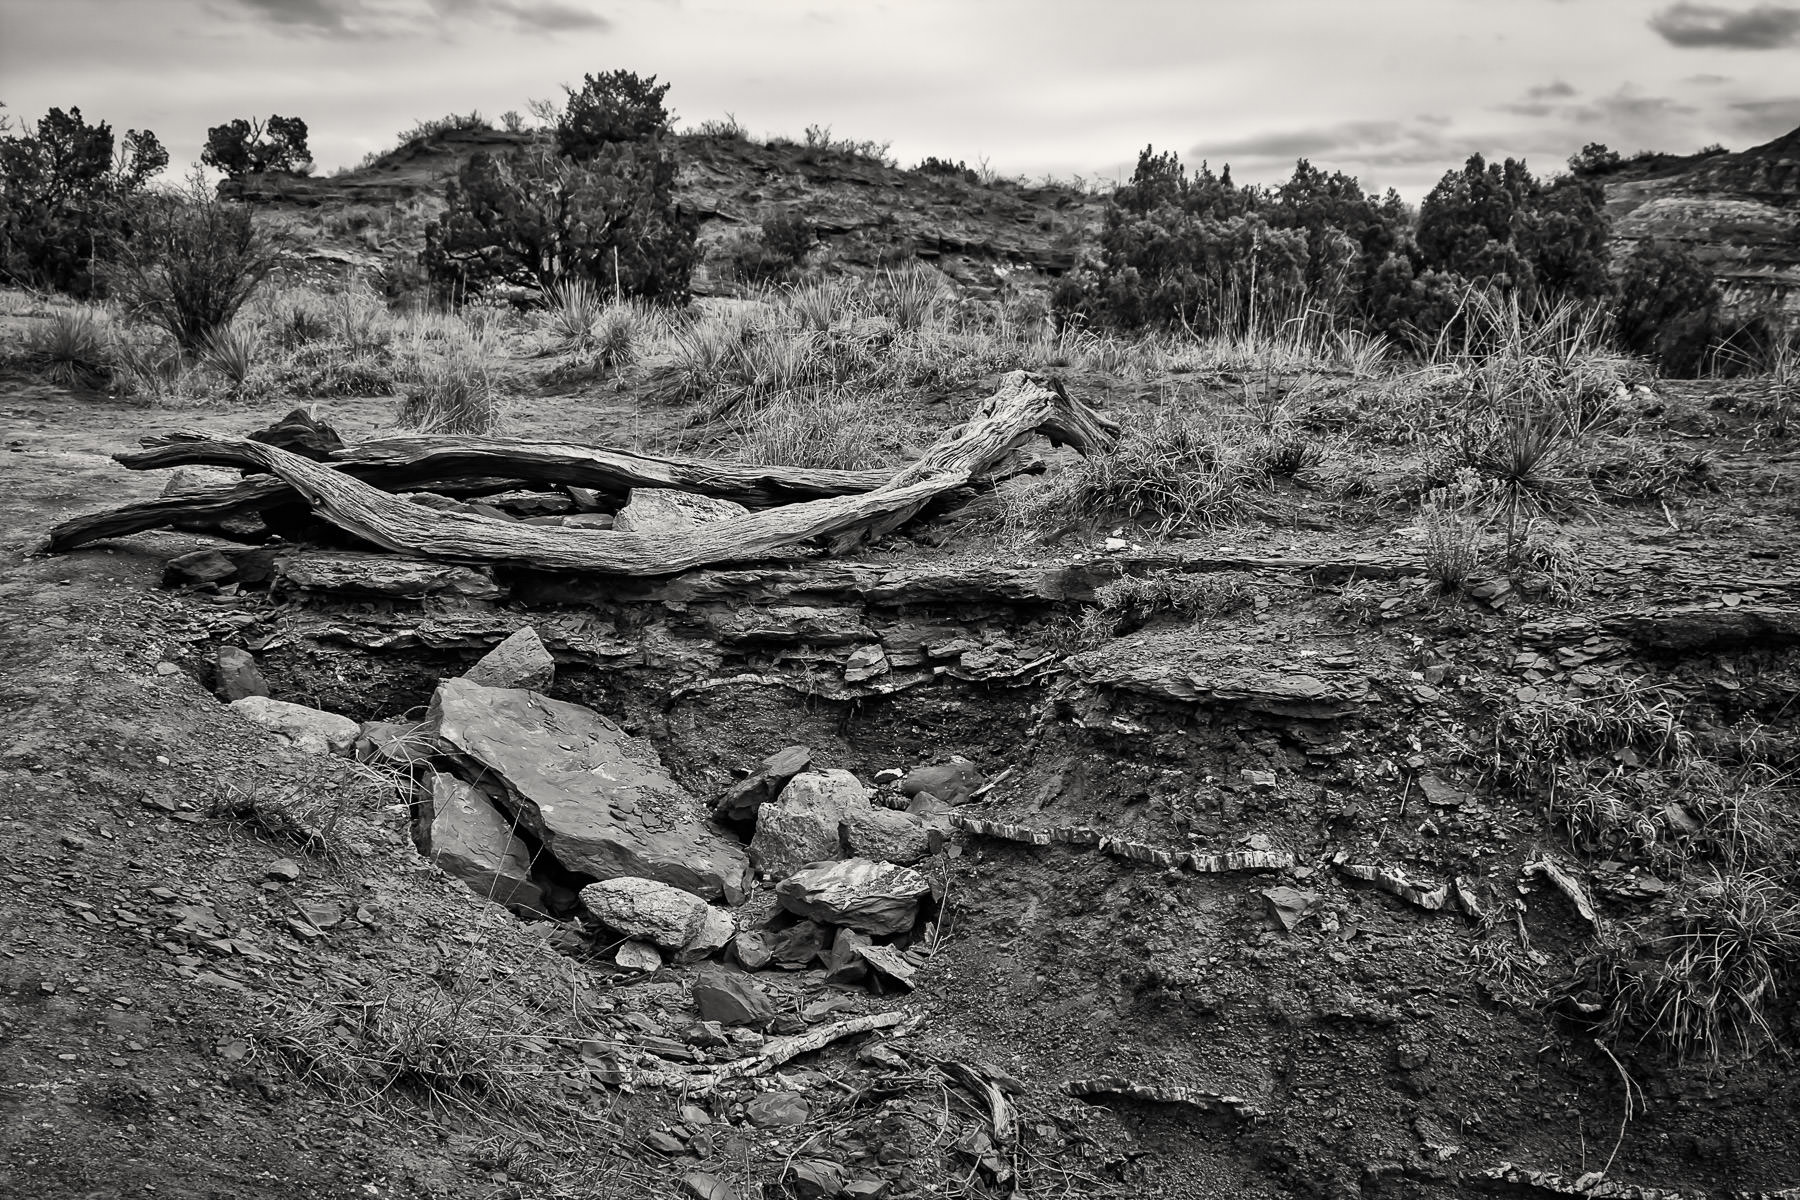 A well-weathered log lies on the desert landscape of Texas' Palo Duro Canyon.